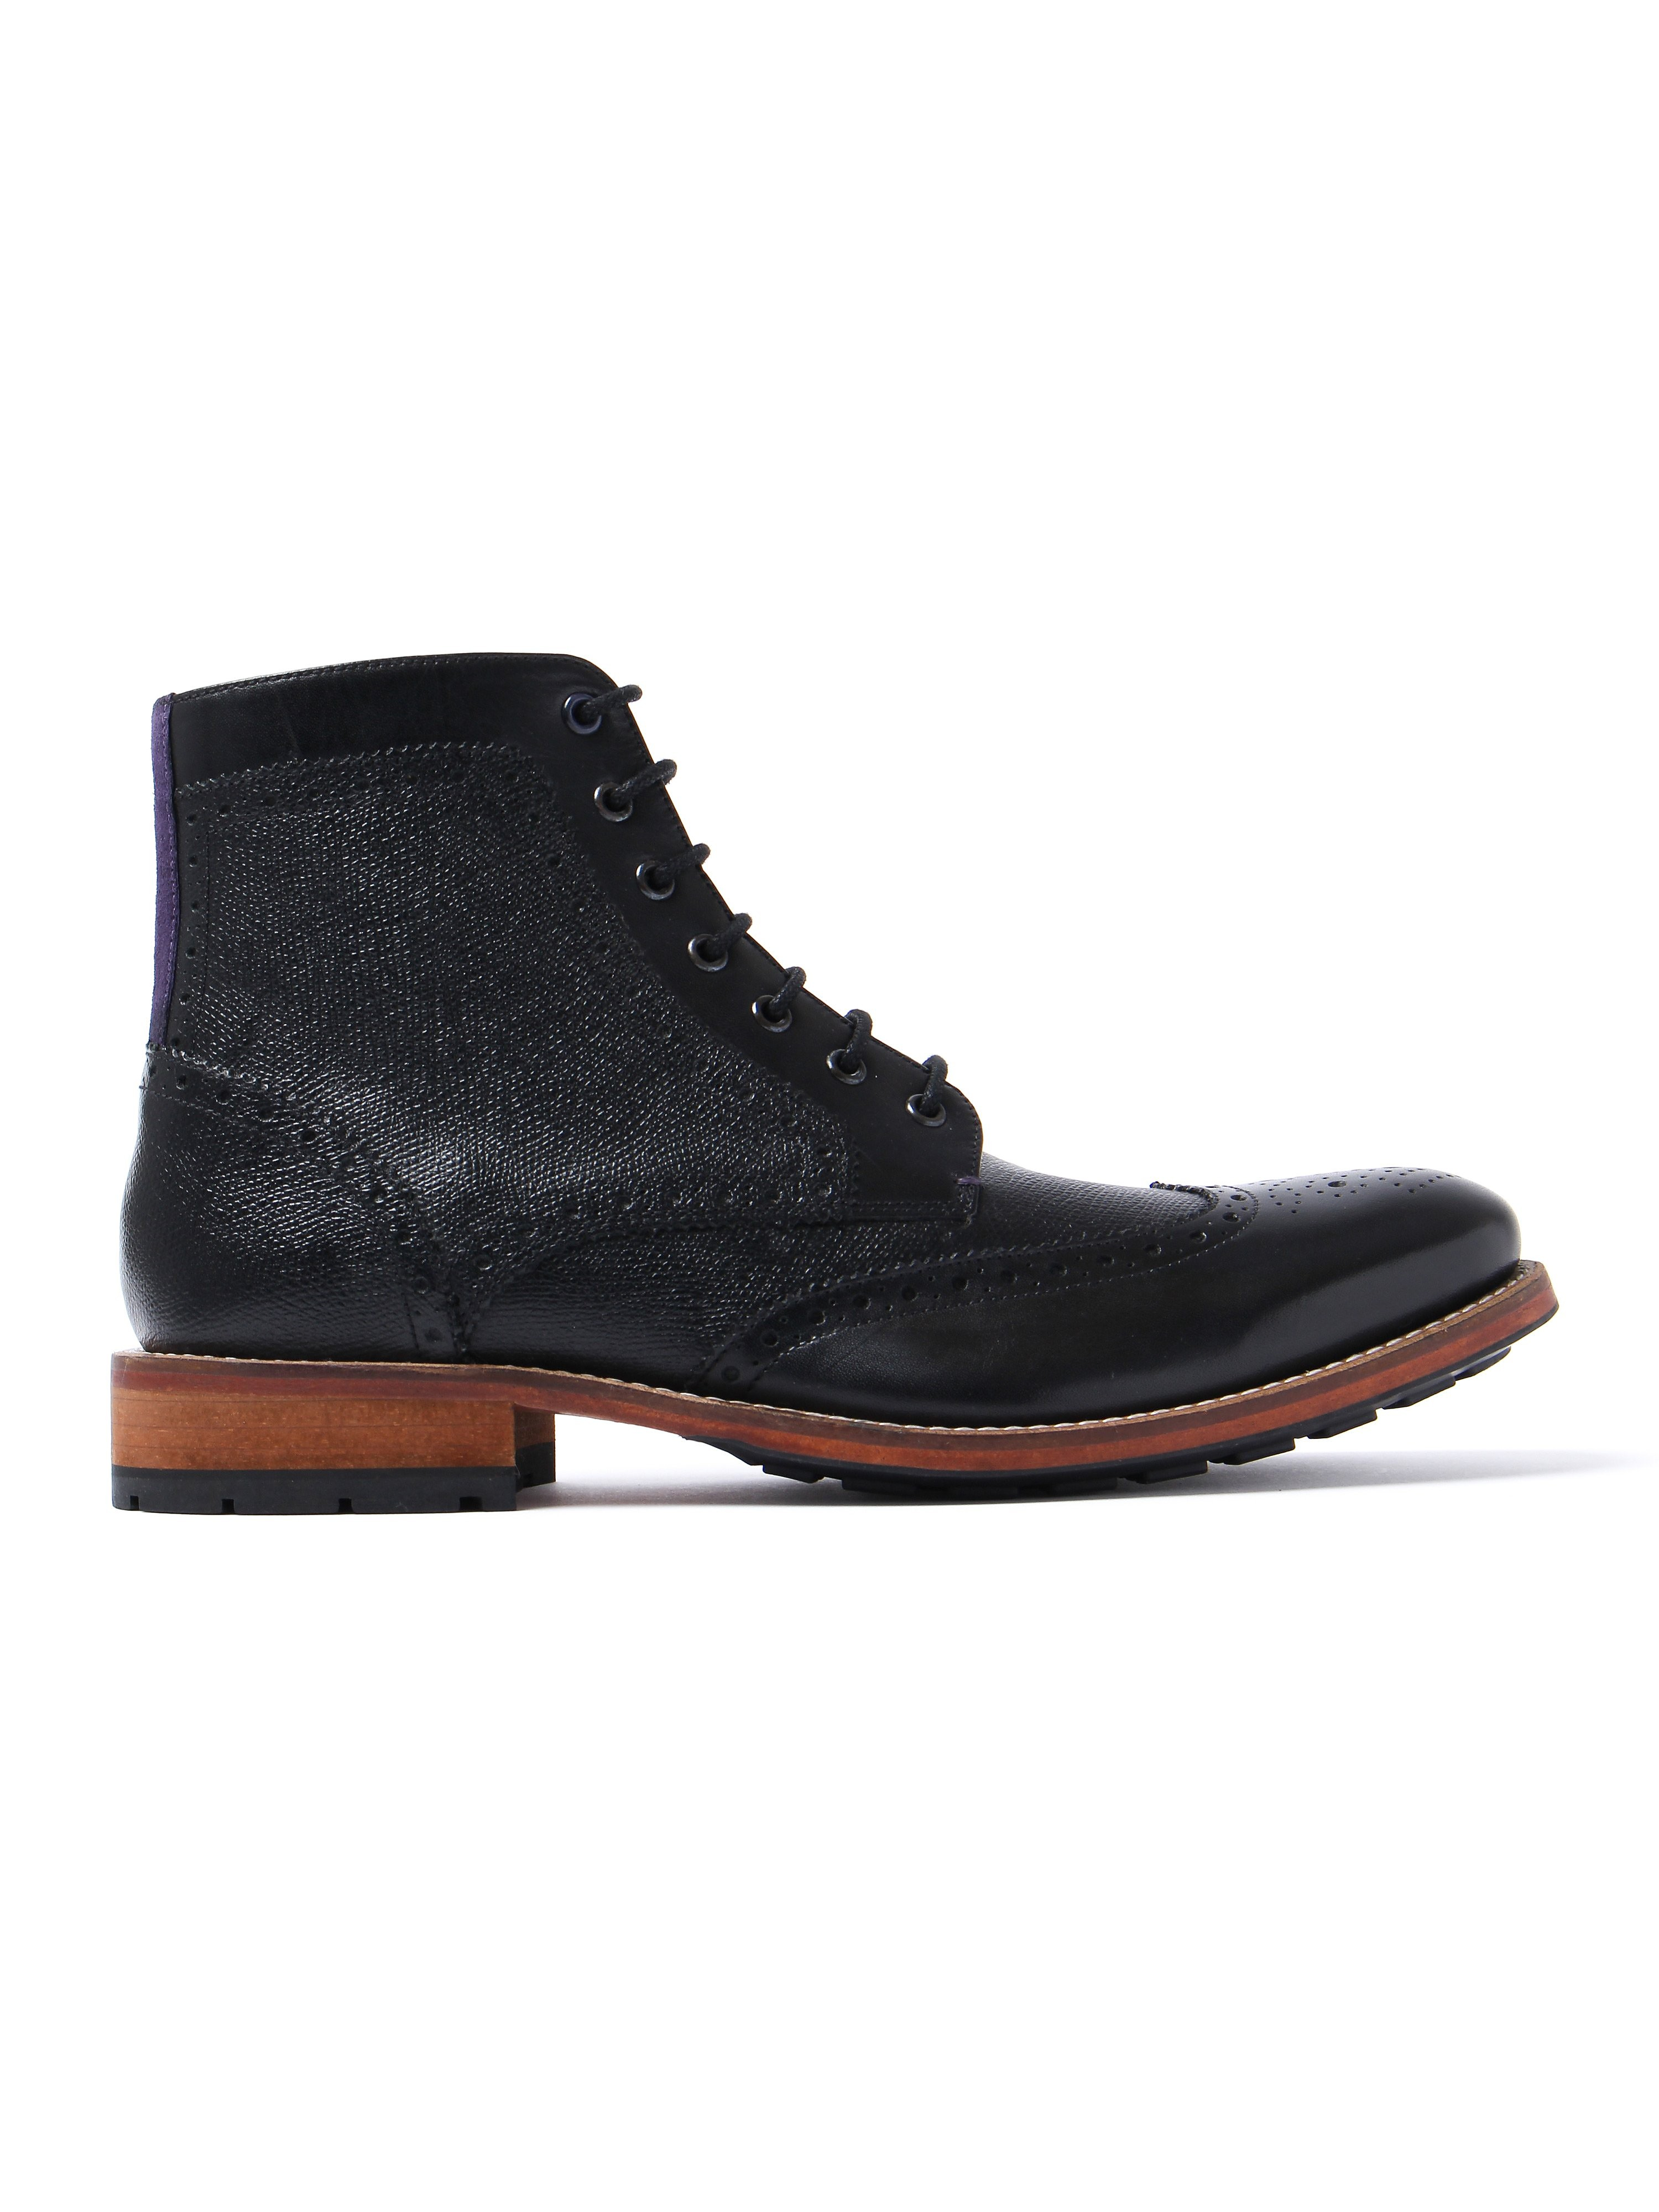 Ted Baker Women's Sealls 3 Brogue Boots - Black Leather